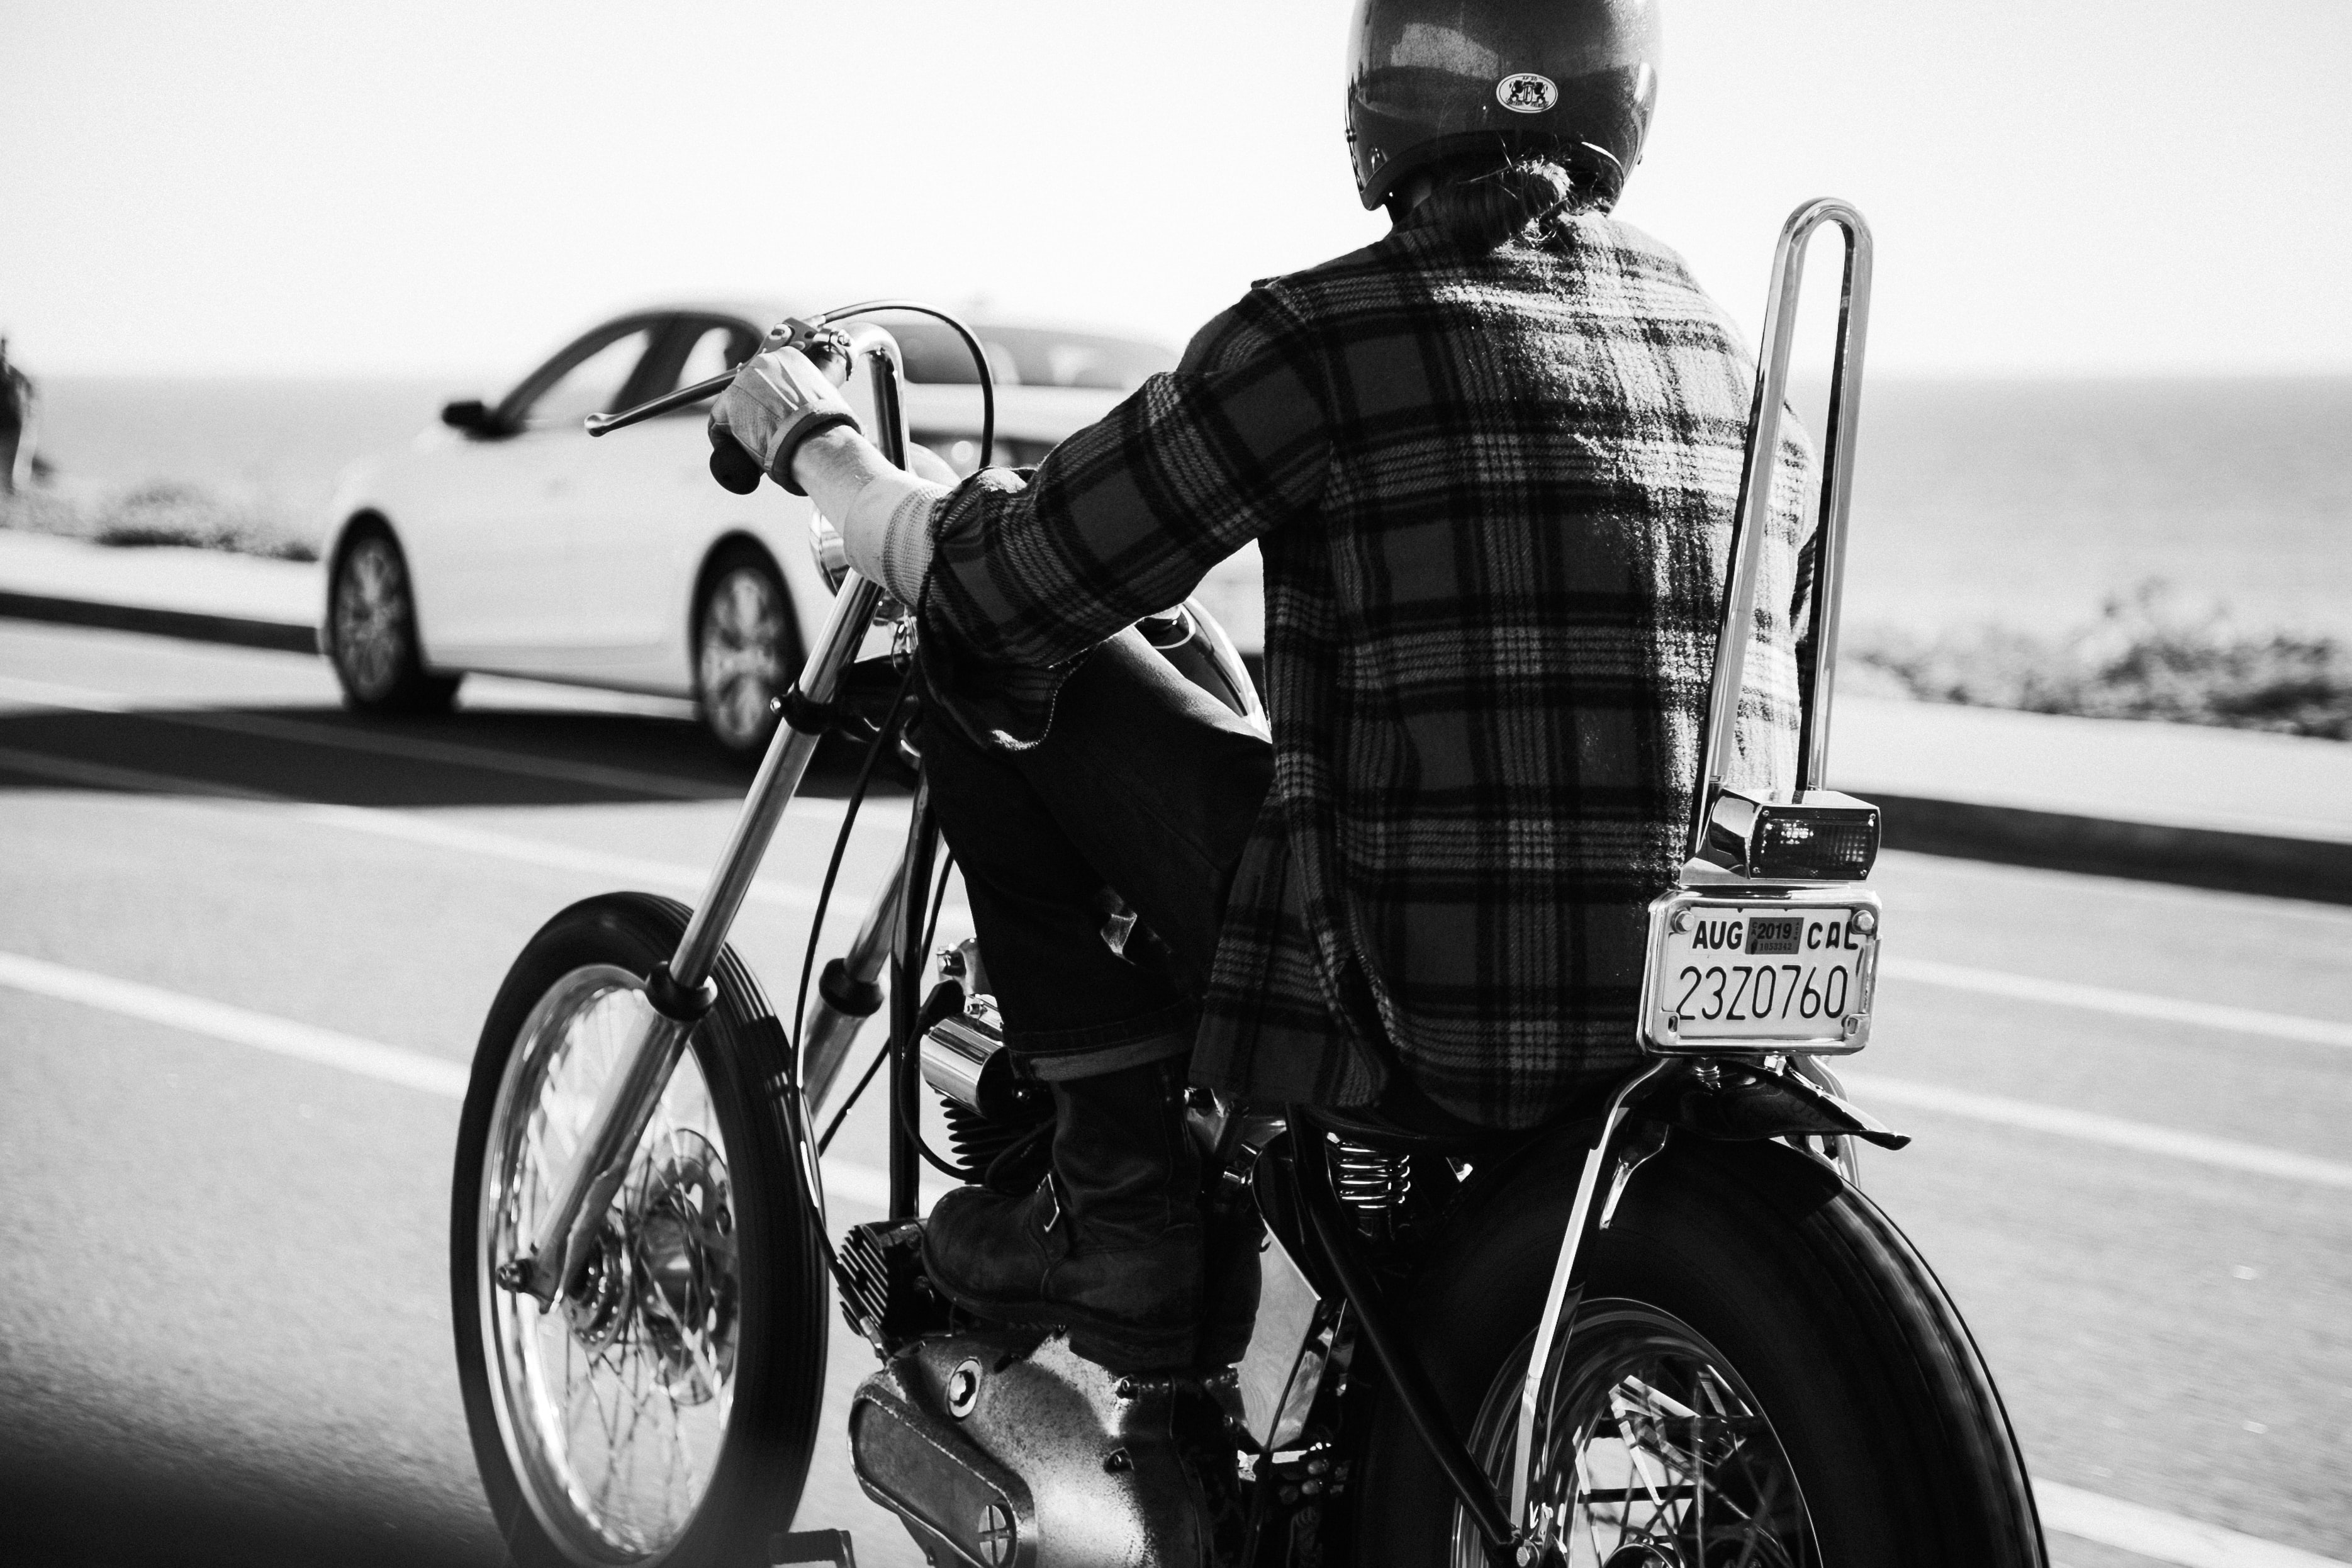 grayscale photo of person wearing plaid dress shirt riding chopper motorcycle